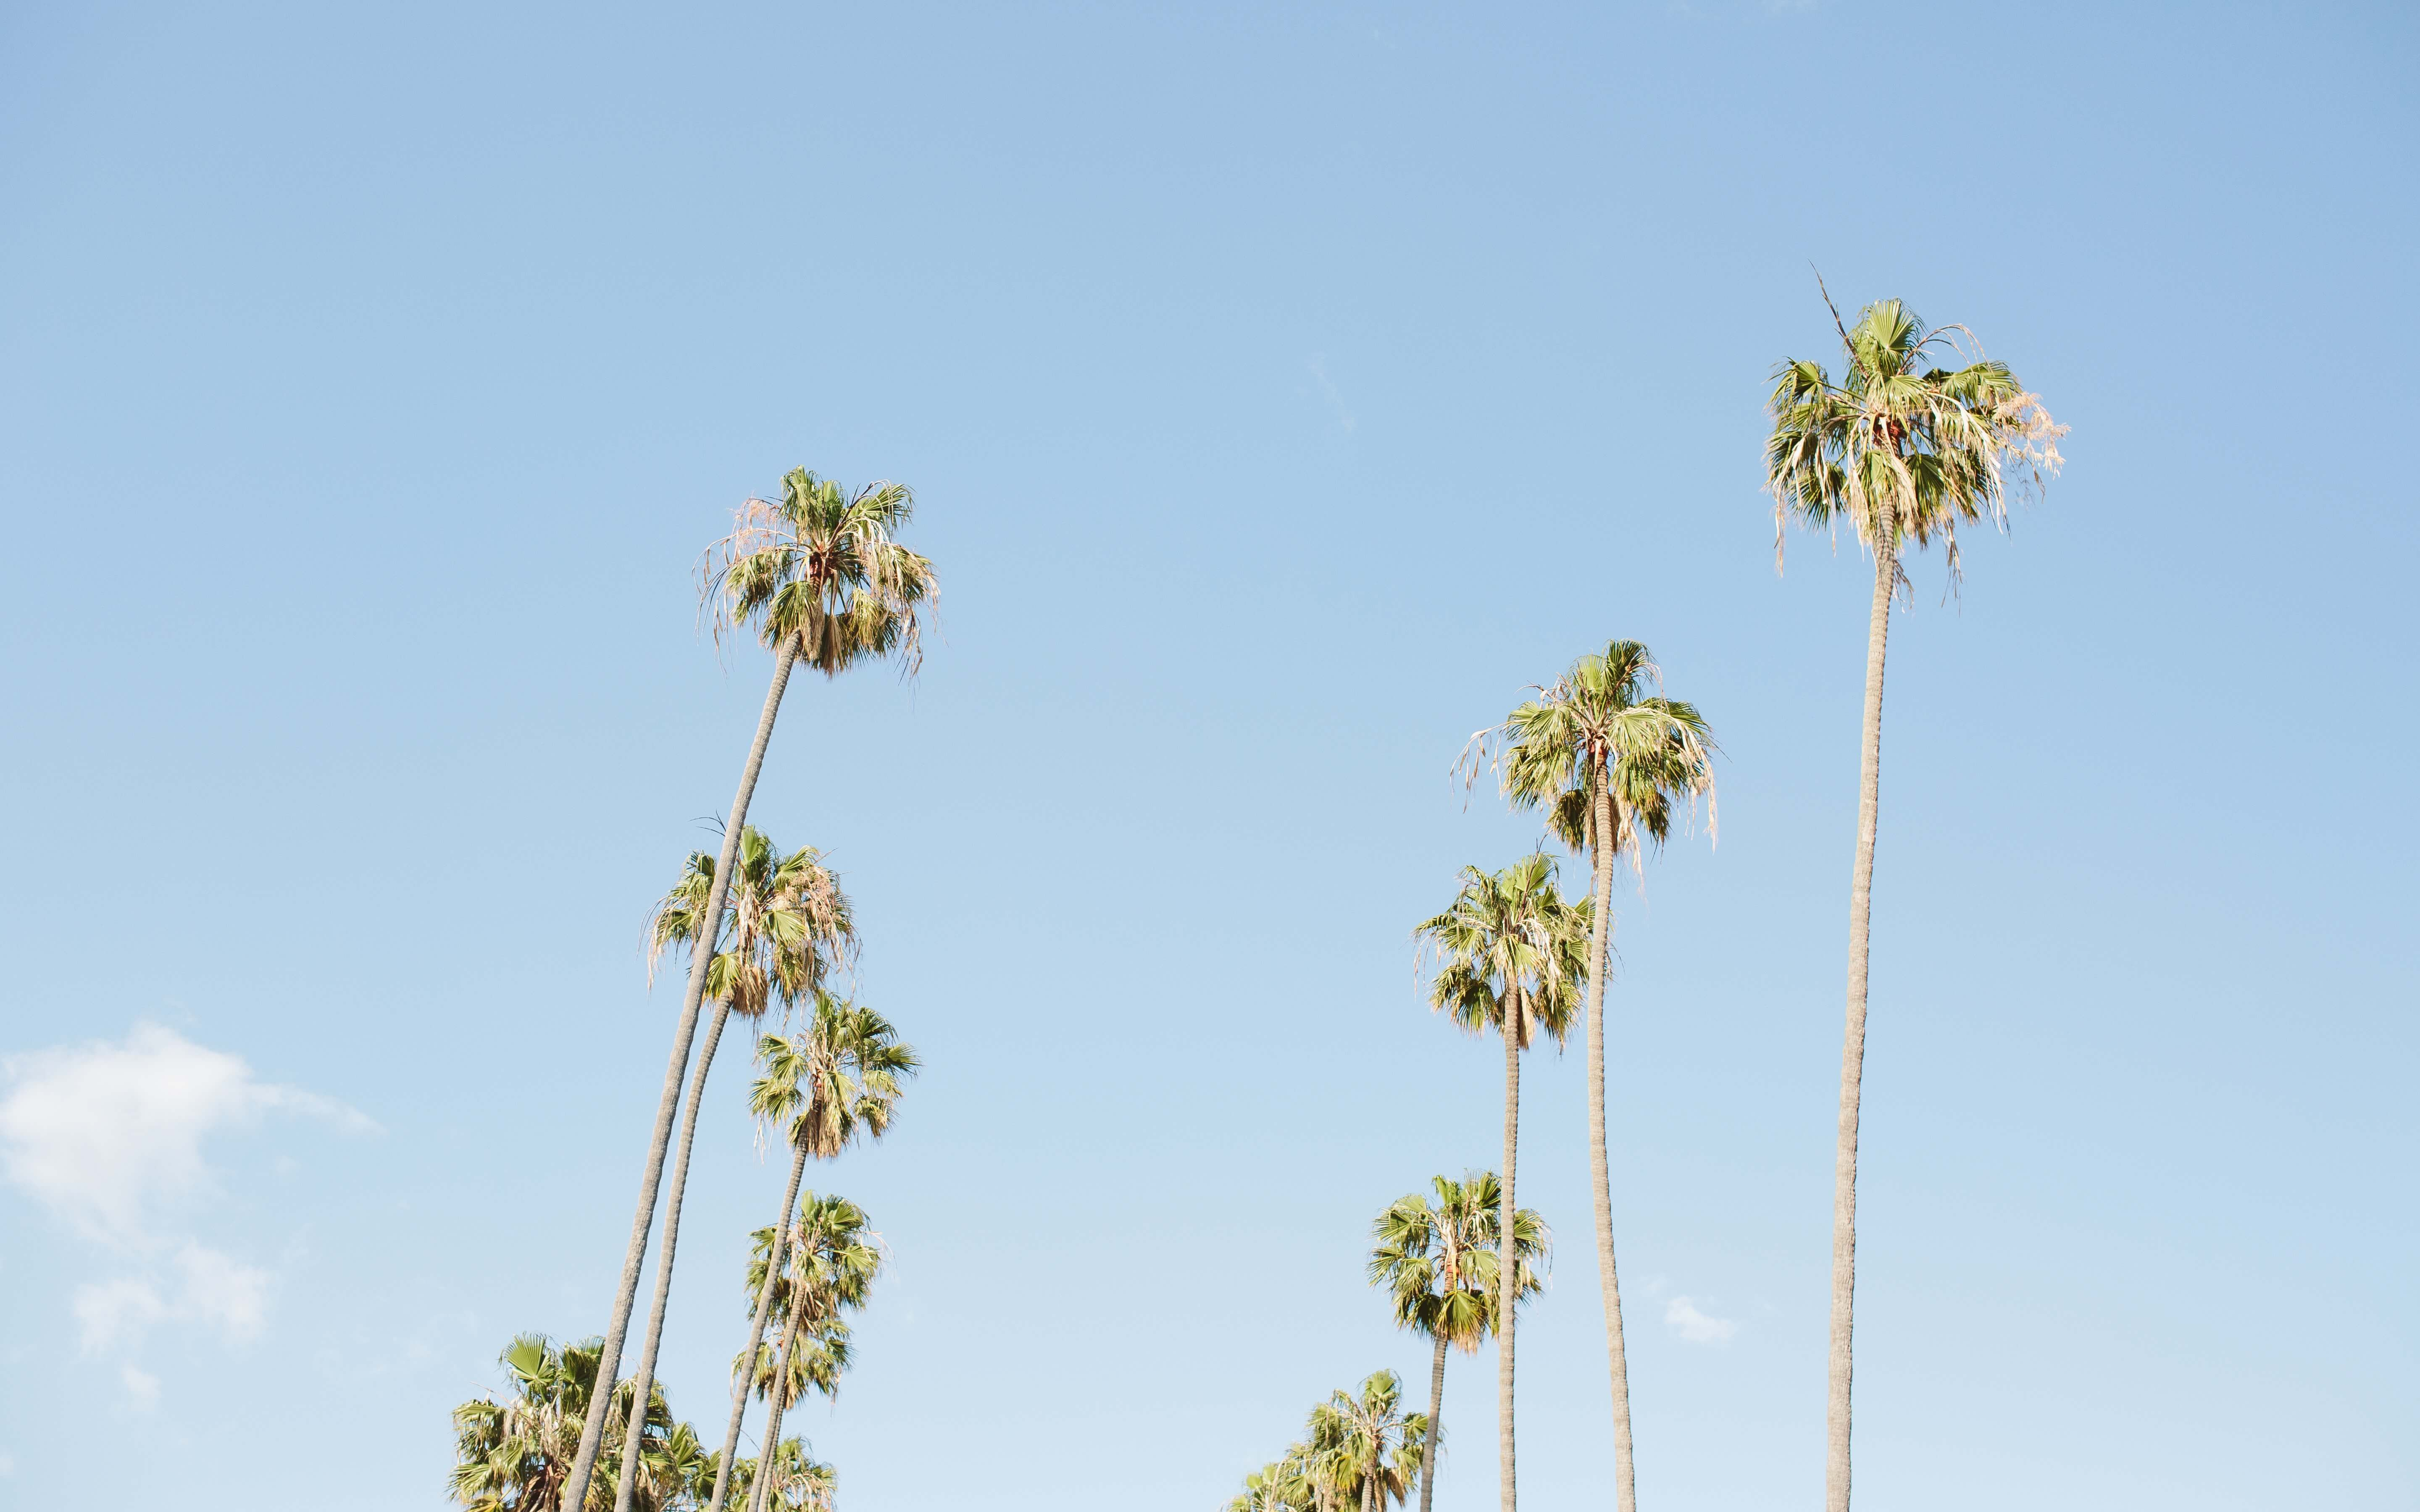 Photo of palm trees lined up in Los Angeles